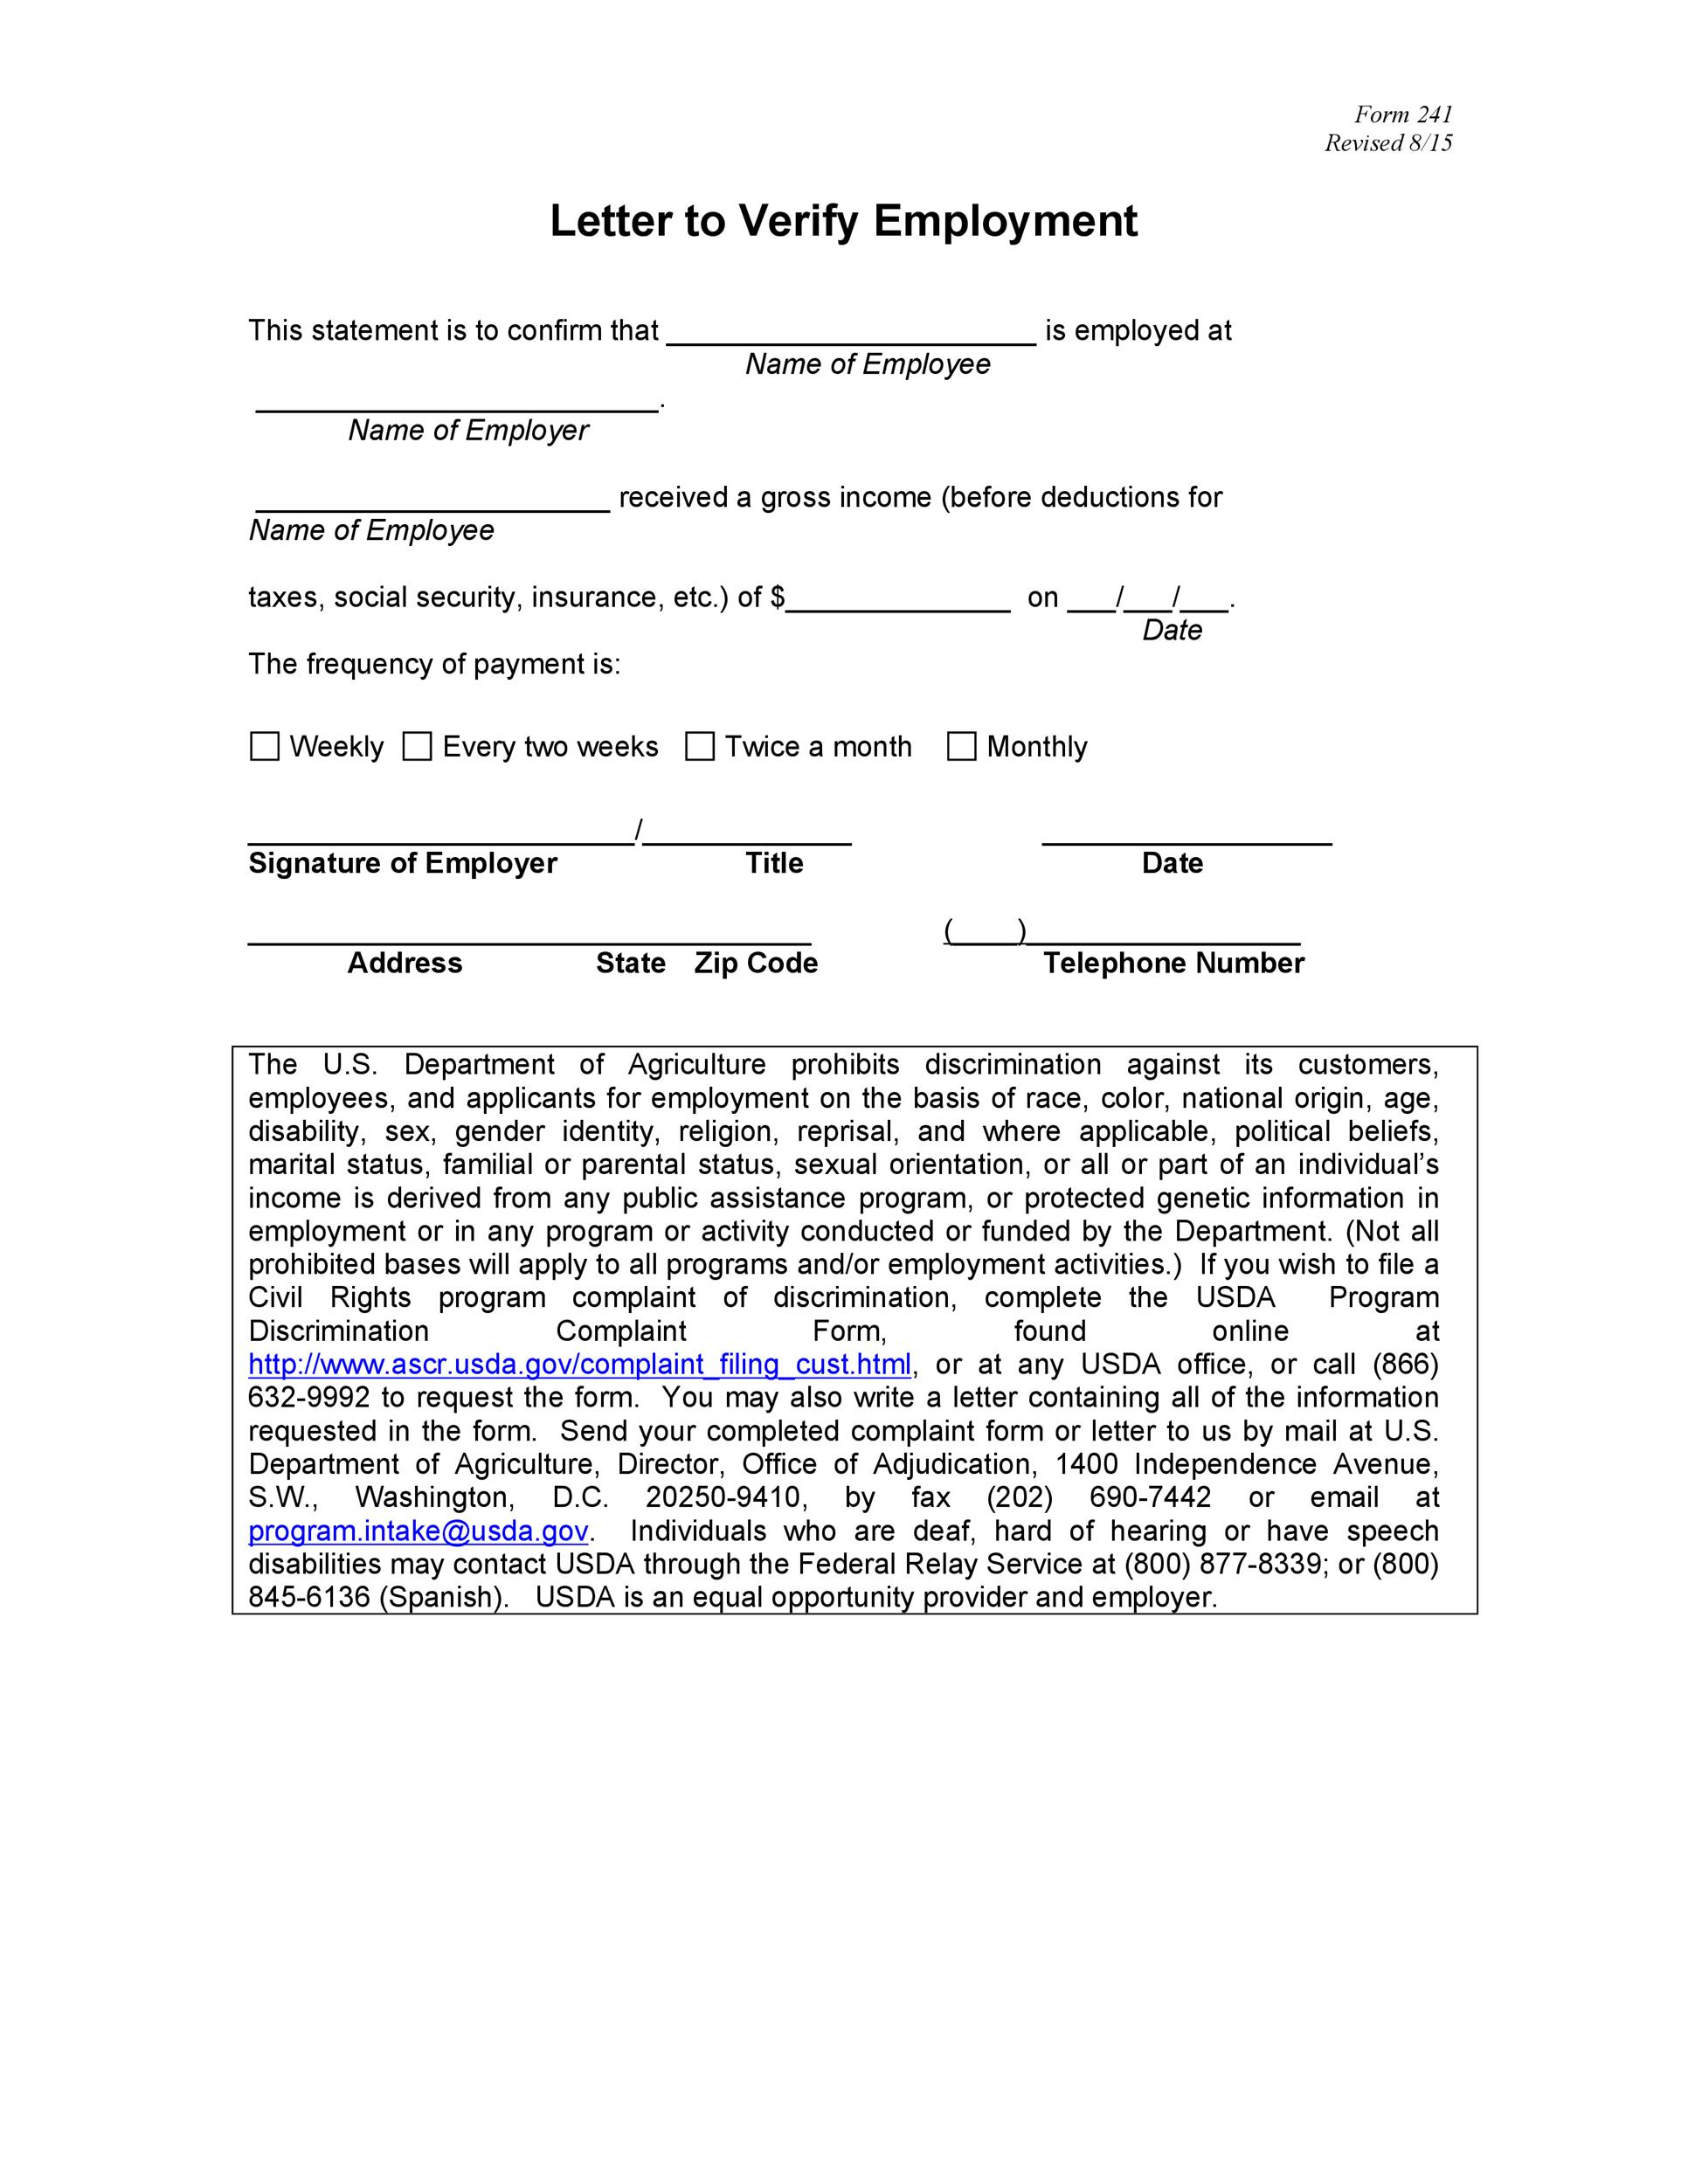 40 proof of employment letters verification forms samples printable proof of employment letter template 07 altavistaventures